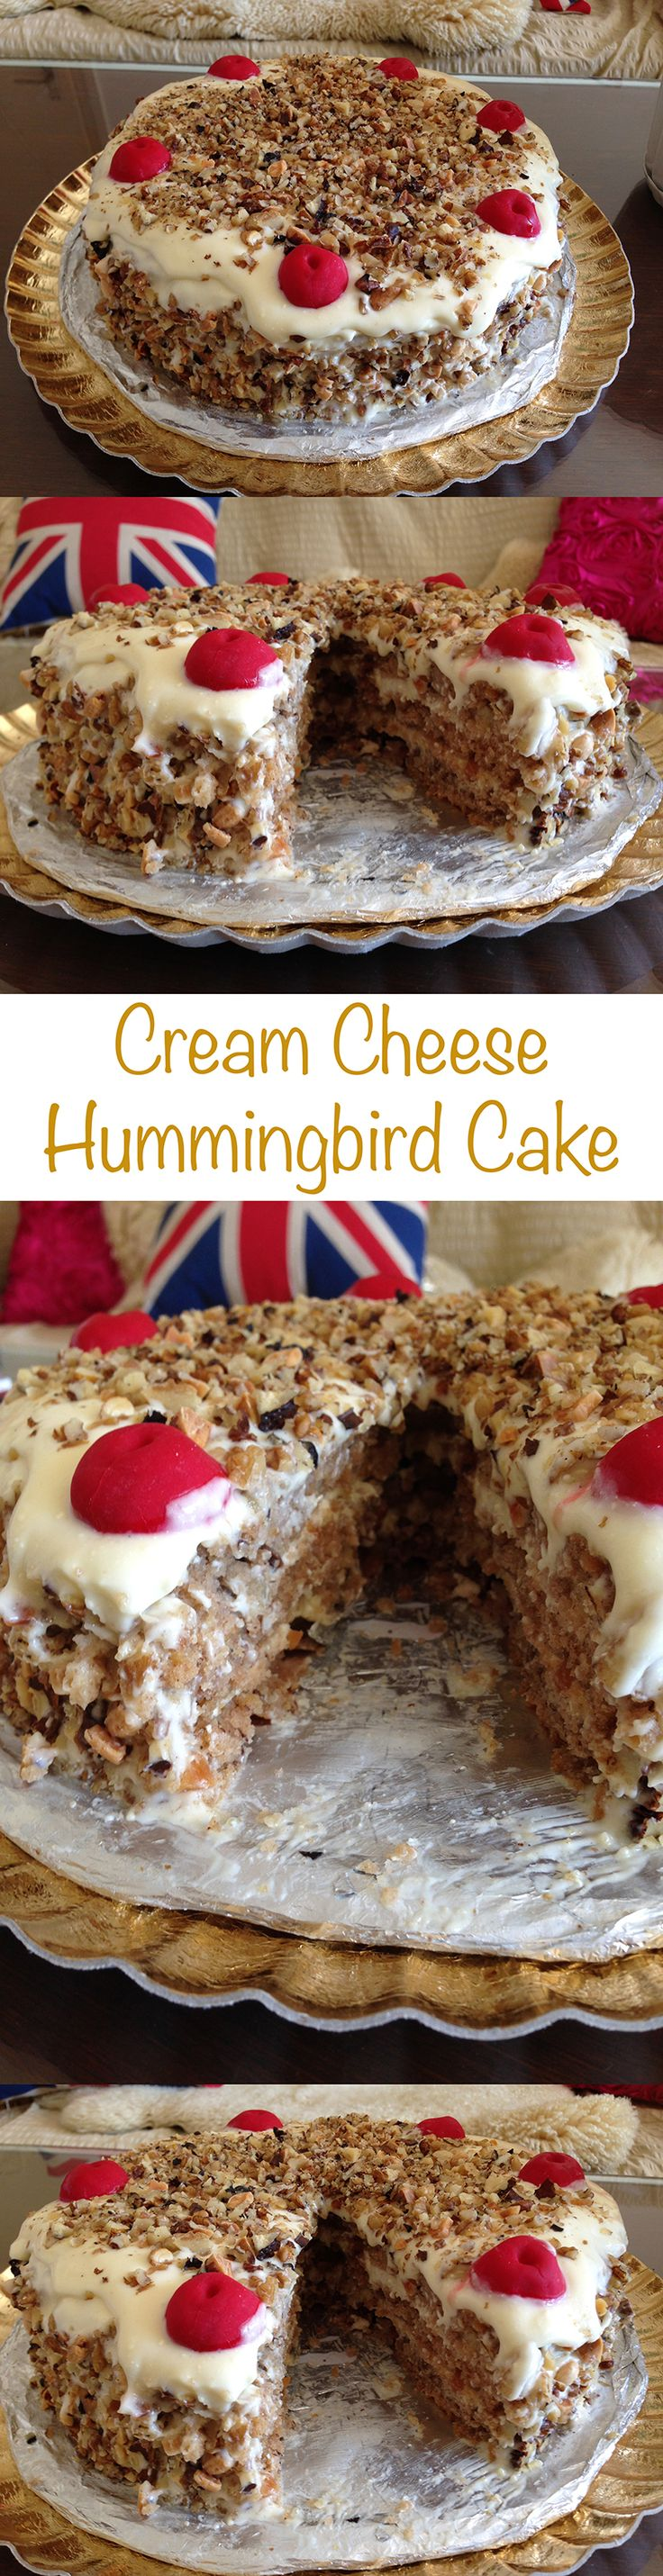 Hummingbird Cake Recipe with Cream Cheese Frosting and Walnuts!